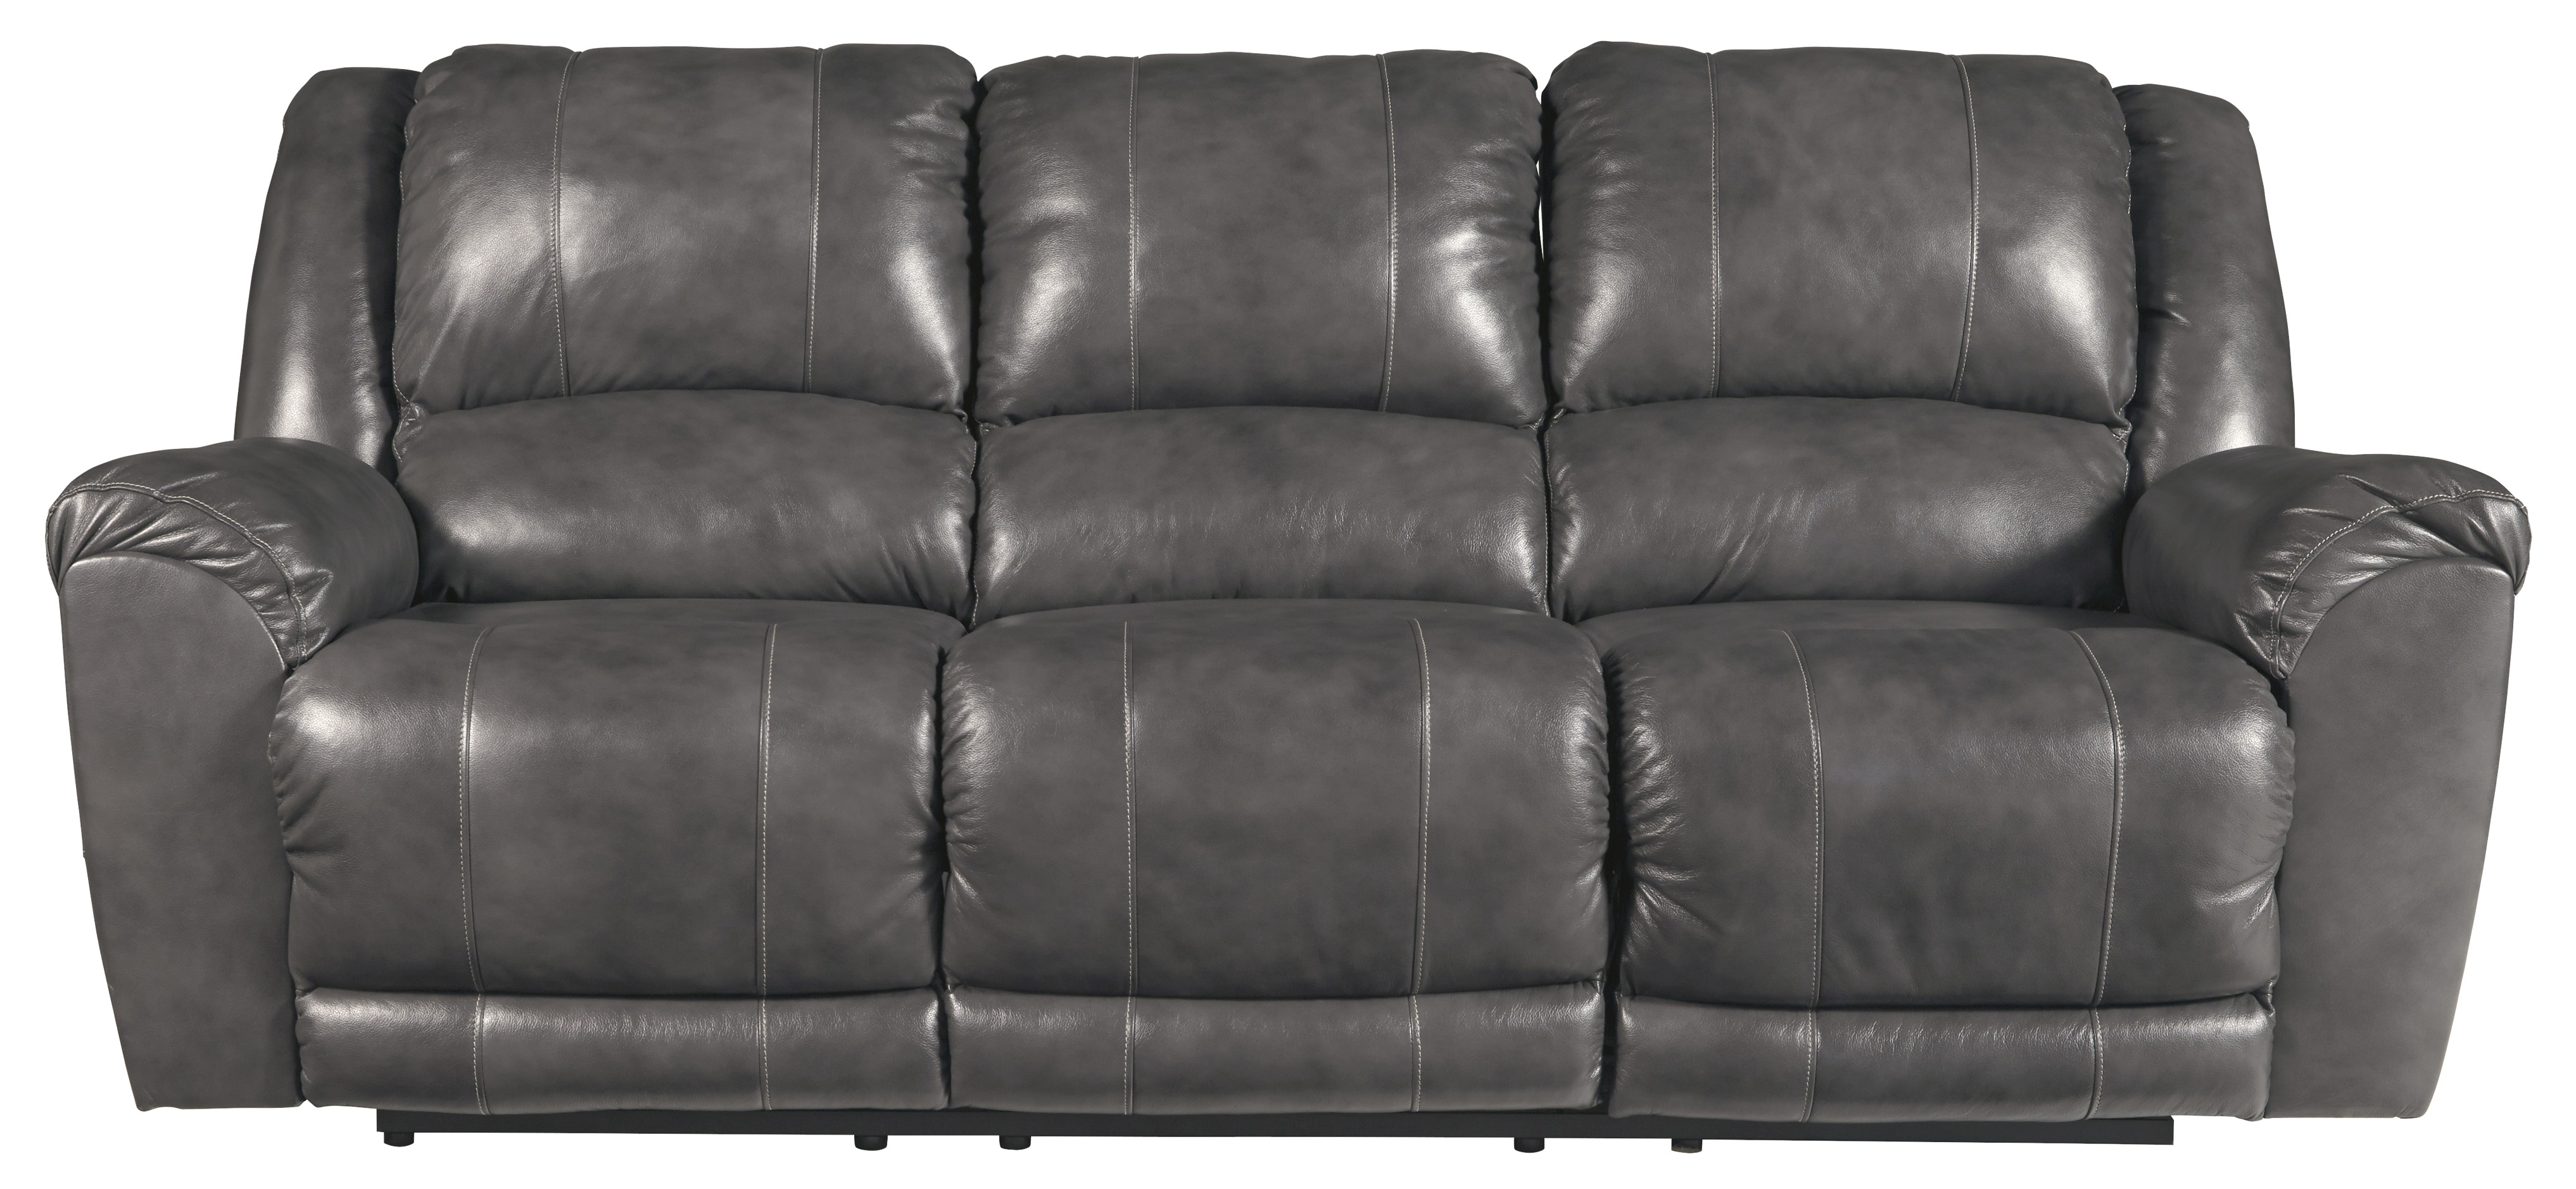 Persiphone Charcoal Reclining Sofa,Signature Design By Ashley